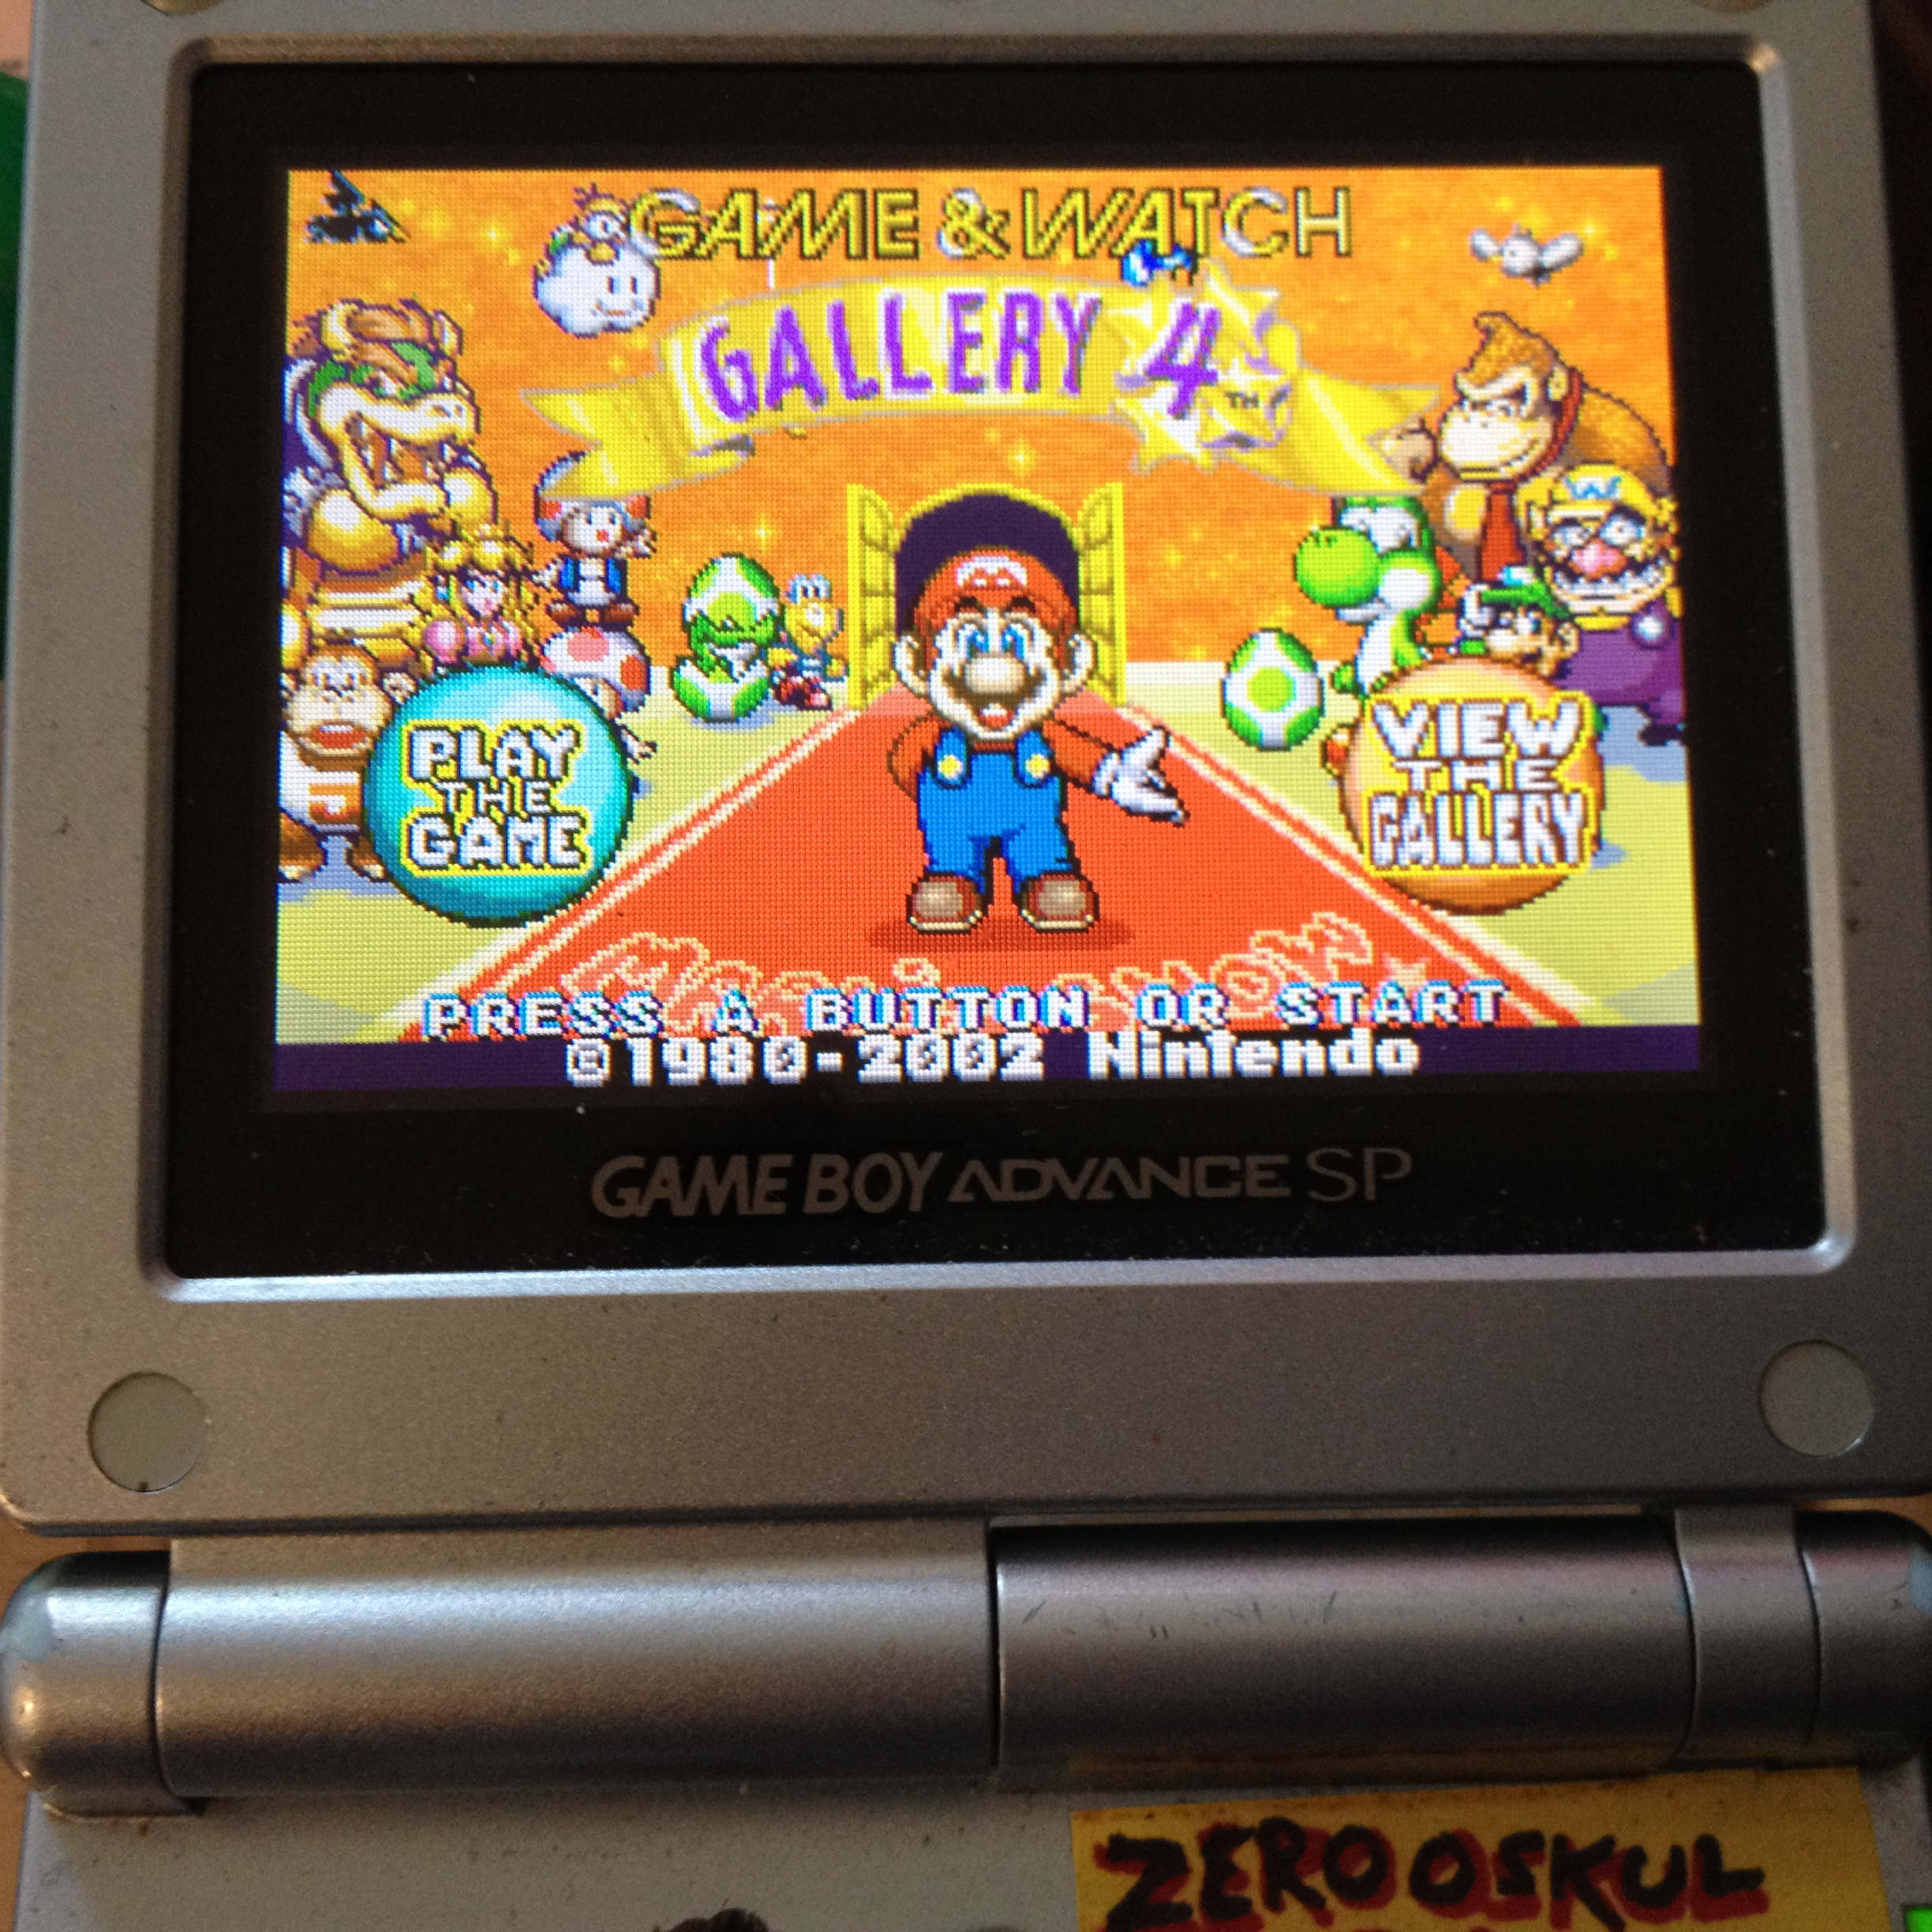 zerooskul: Game & Watch Gallery 4: Bomb Sweeper [Classic: Hard] (GBA) 1,573 points on 2019-08-14 22:50:51